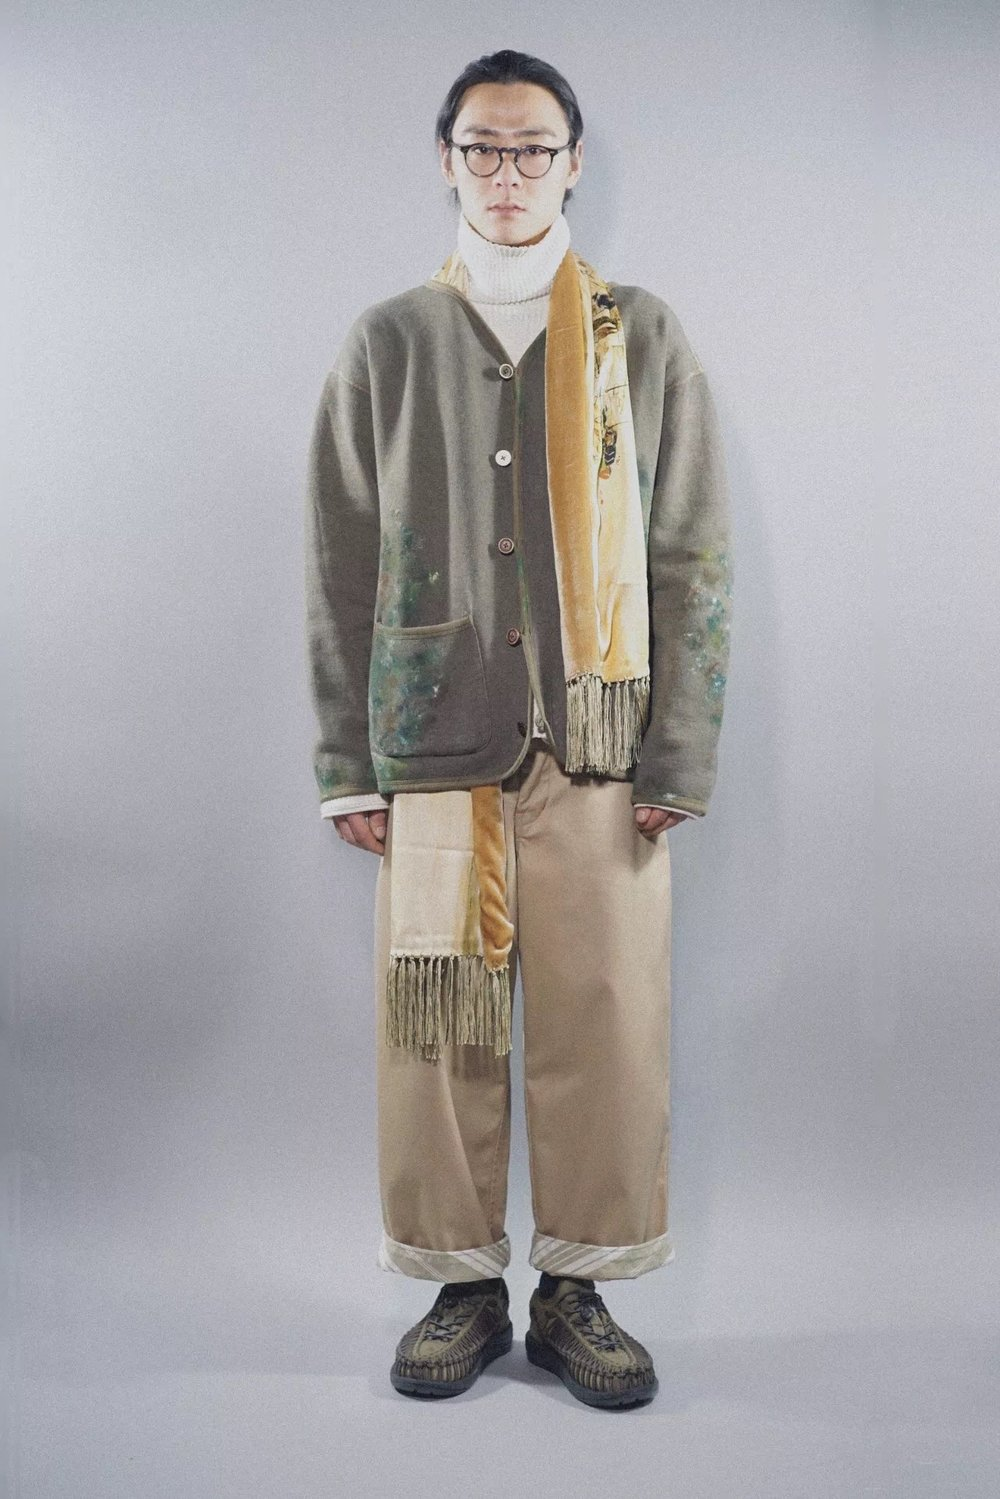 "PC - HAND WORK ARTIST CARDIGAN - OLIVE PC - FRENCH THERMAL TURTLENECK - WHITE PC - CHINO WIDE PANTS ""FRENCH VINTAGE SPECIAL"" PC - SILK STOLE - GOLD KEEN -UNEEK - OLIVE"